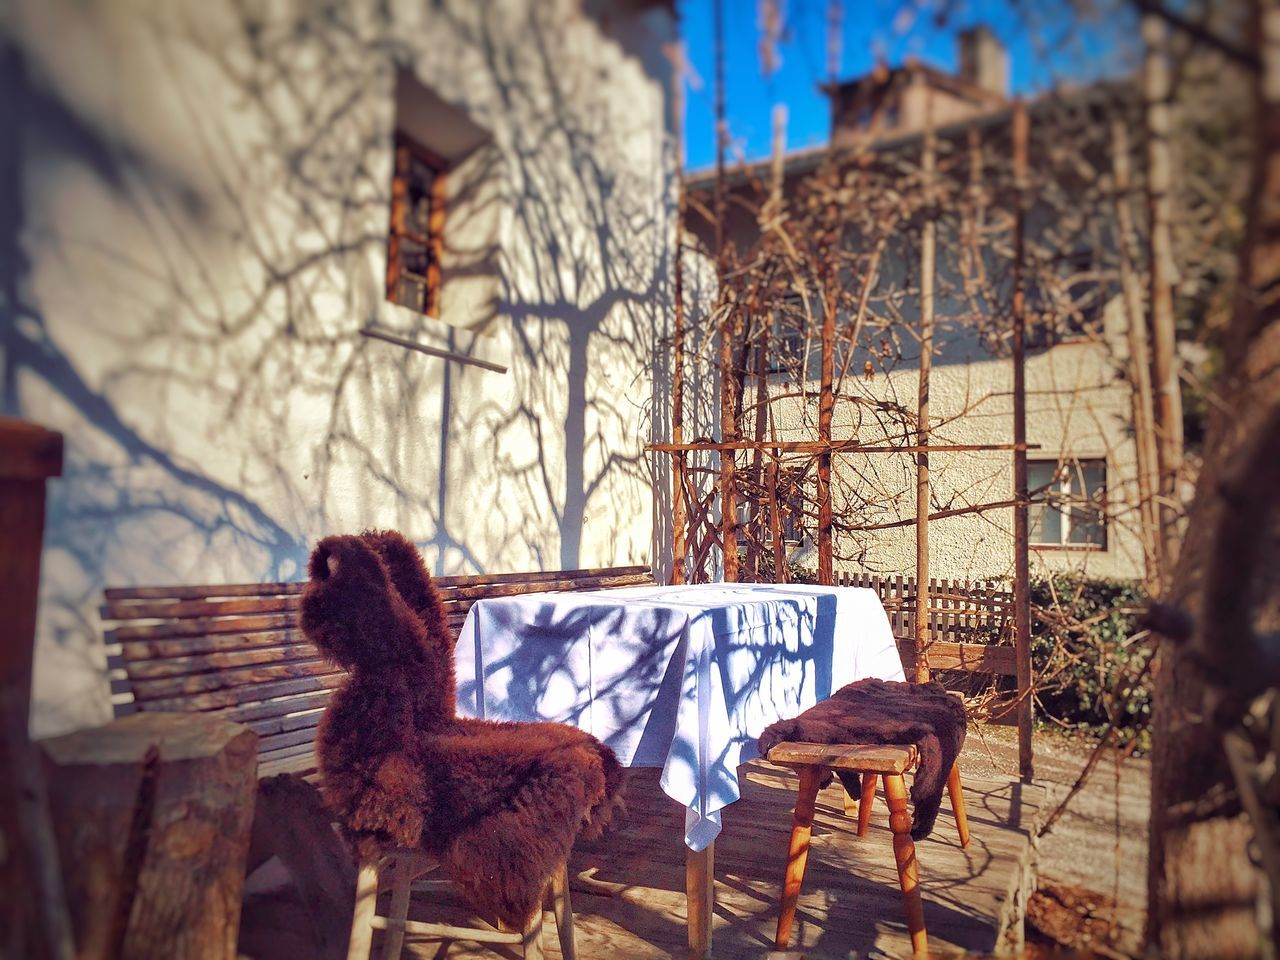 Furs On Seat By Table In Yard